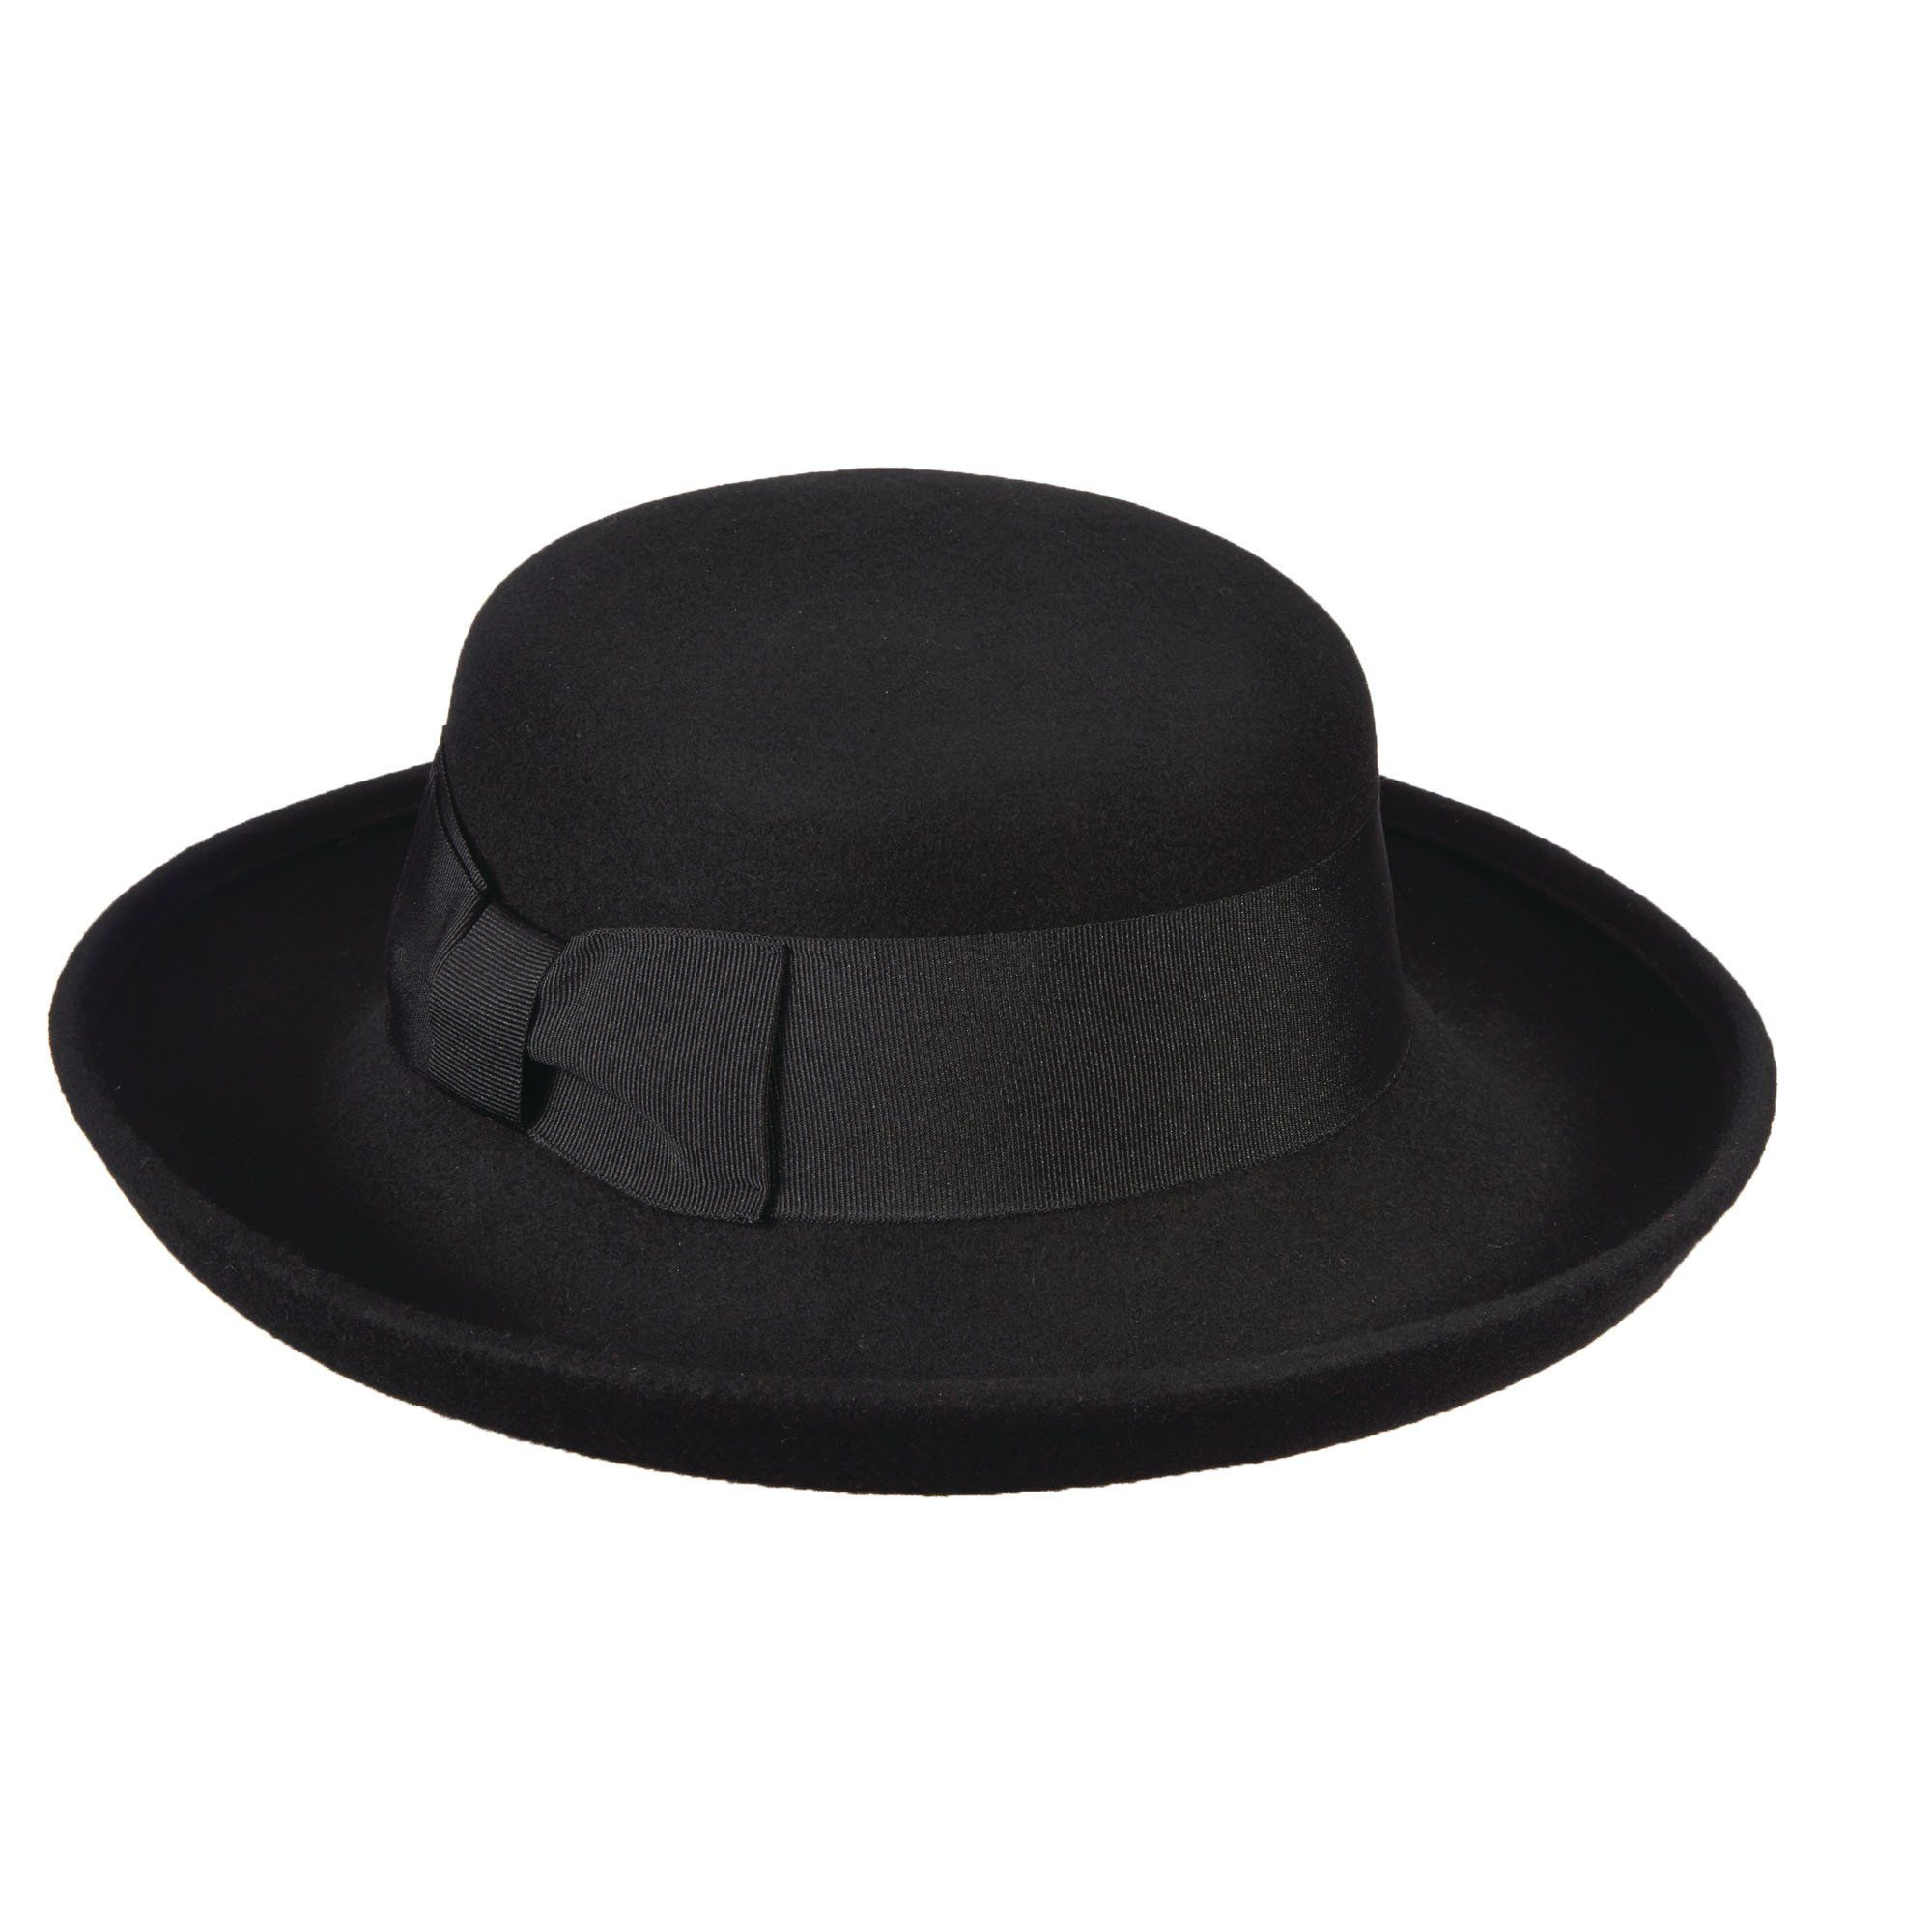 26ec02d16 Up-Turned Brim Wool Felt Hat by Scala in 2019   Products   Hats ...